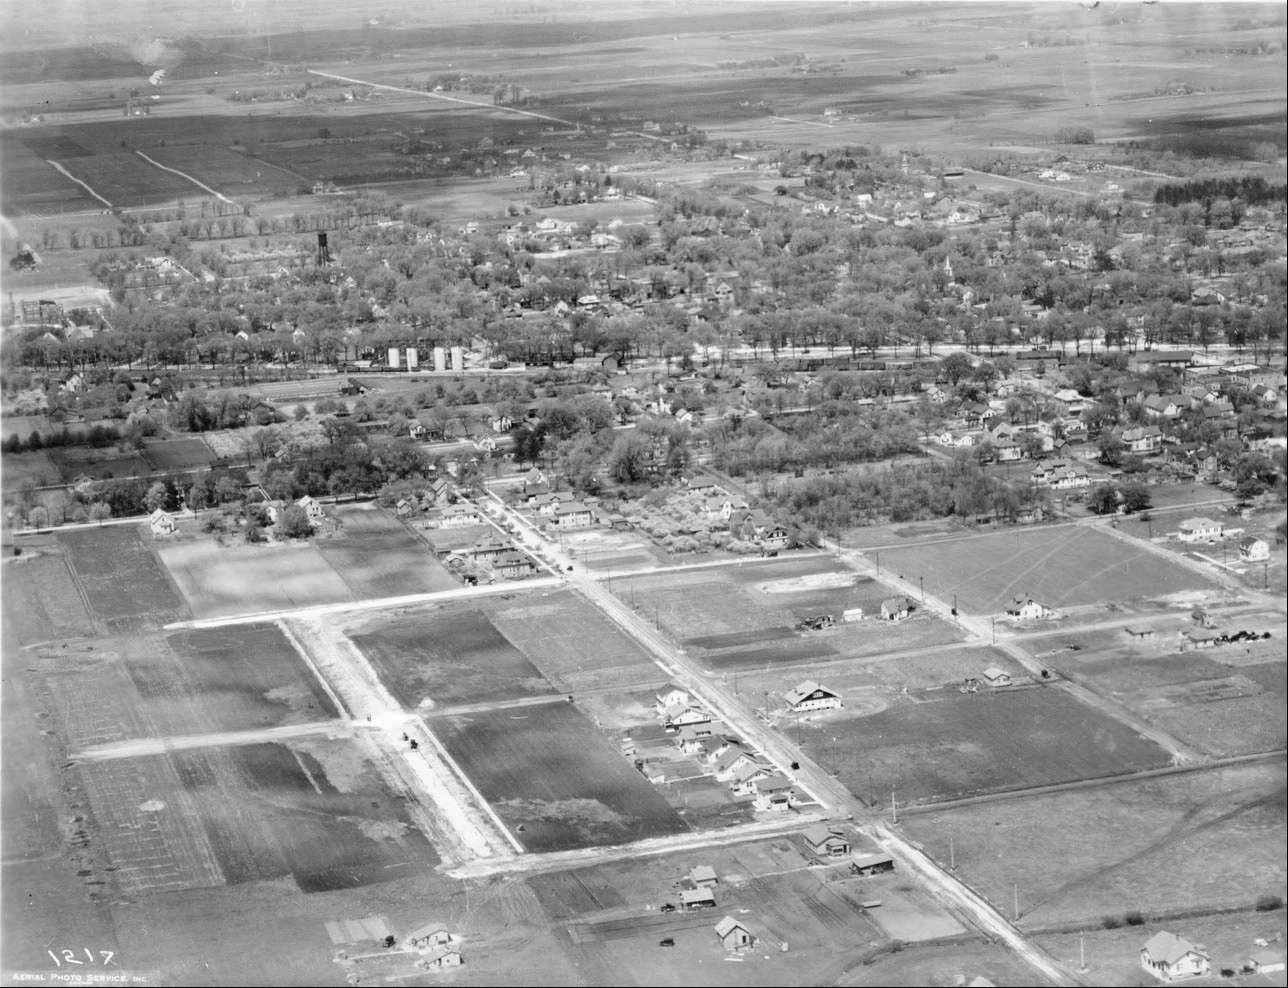 Central Arlington Heights looked like this is 1925.